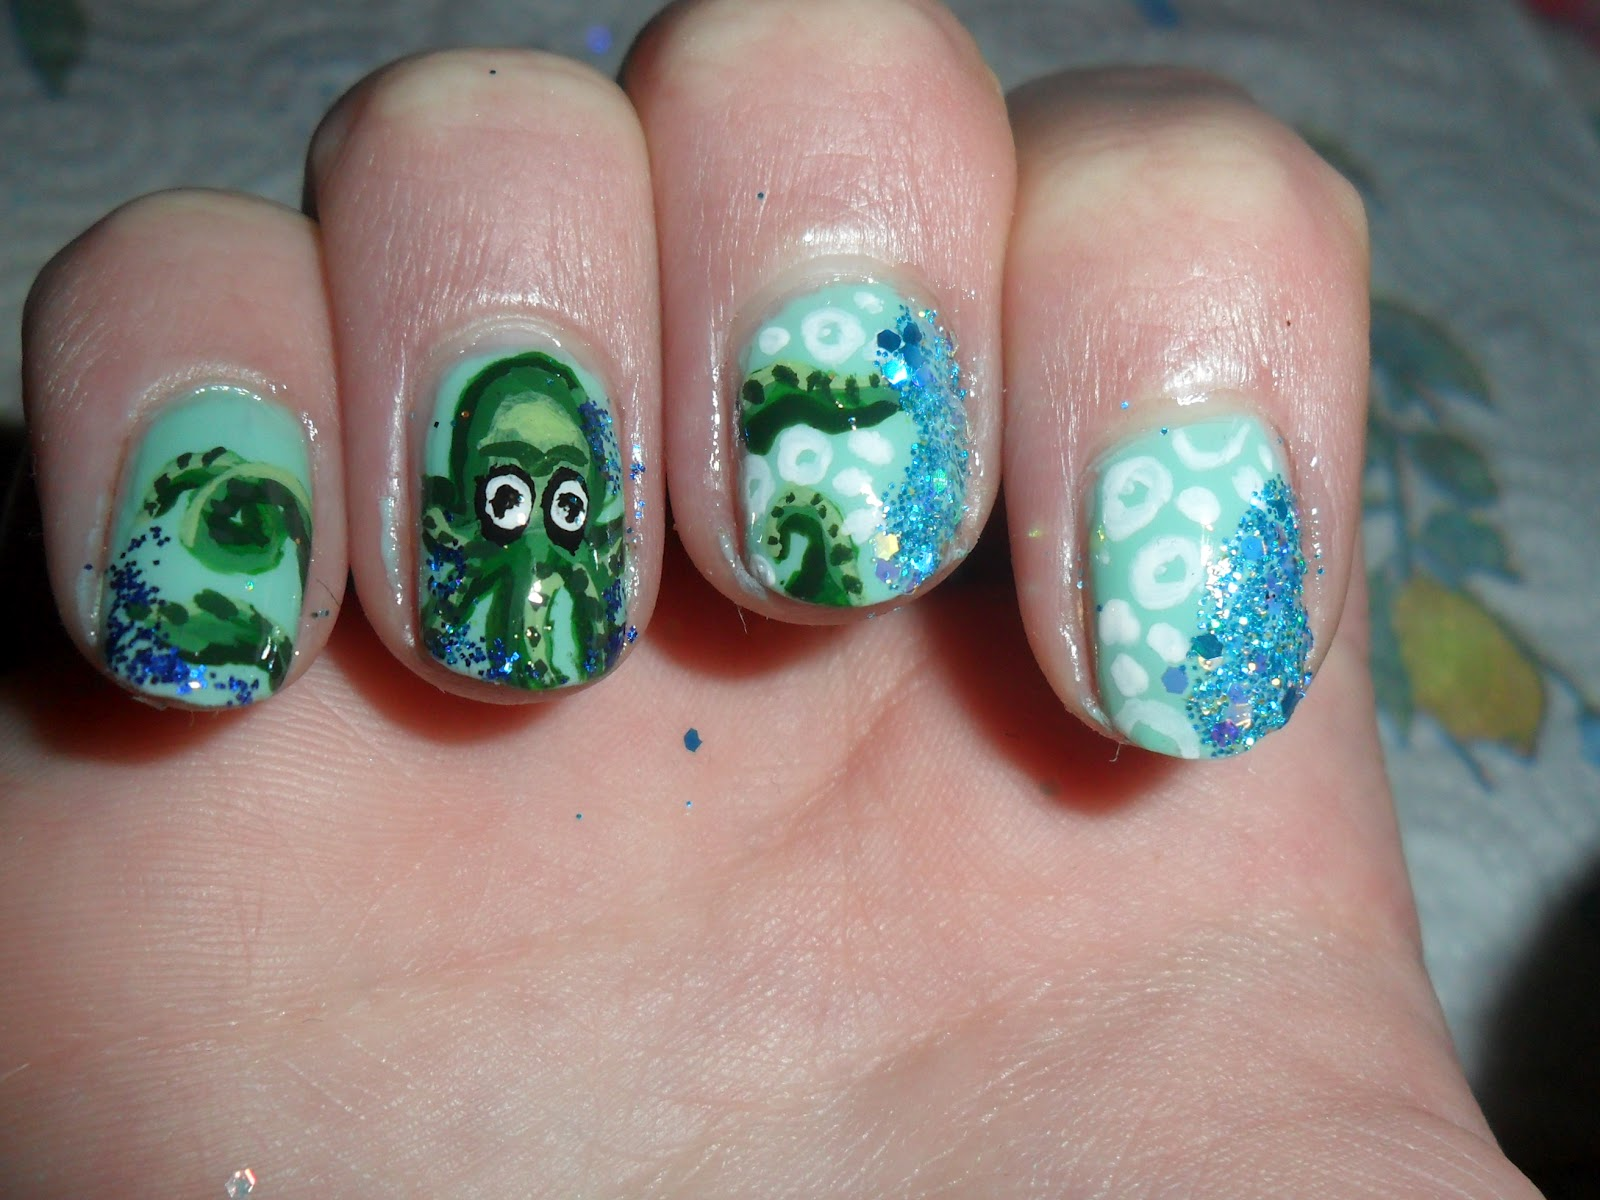 Sara fisk nail art octopussquid nails inspired by sonoma nail art octopussquid nails inspired by sonoma nail art prinsesfo Image collections